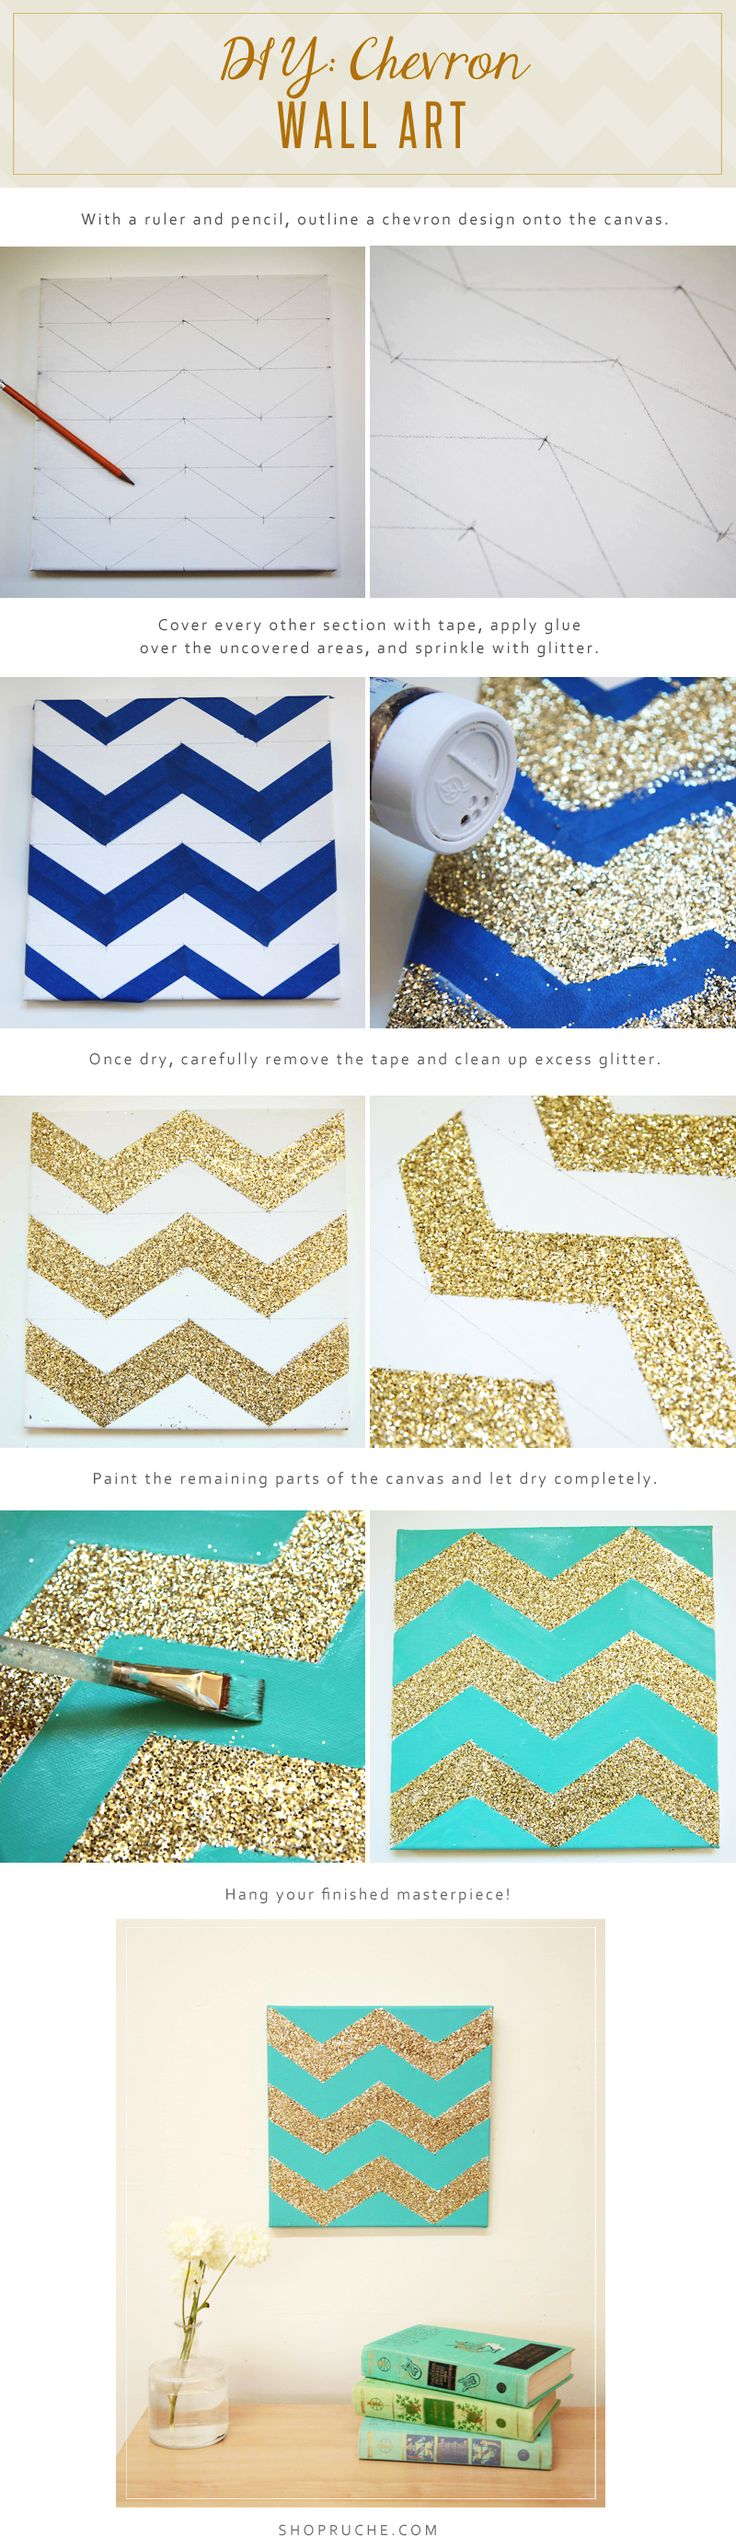 DIY: Chevron Wall Art.